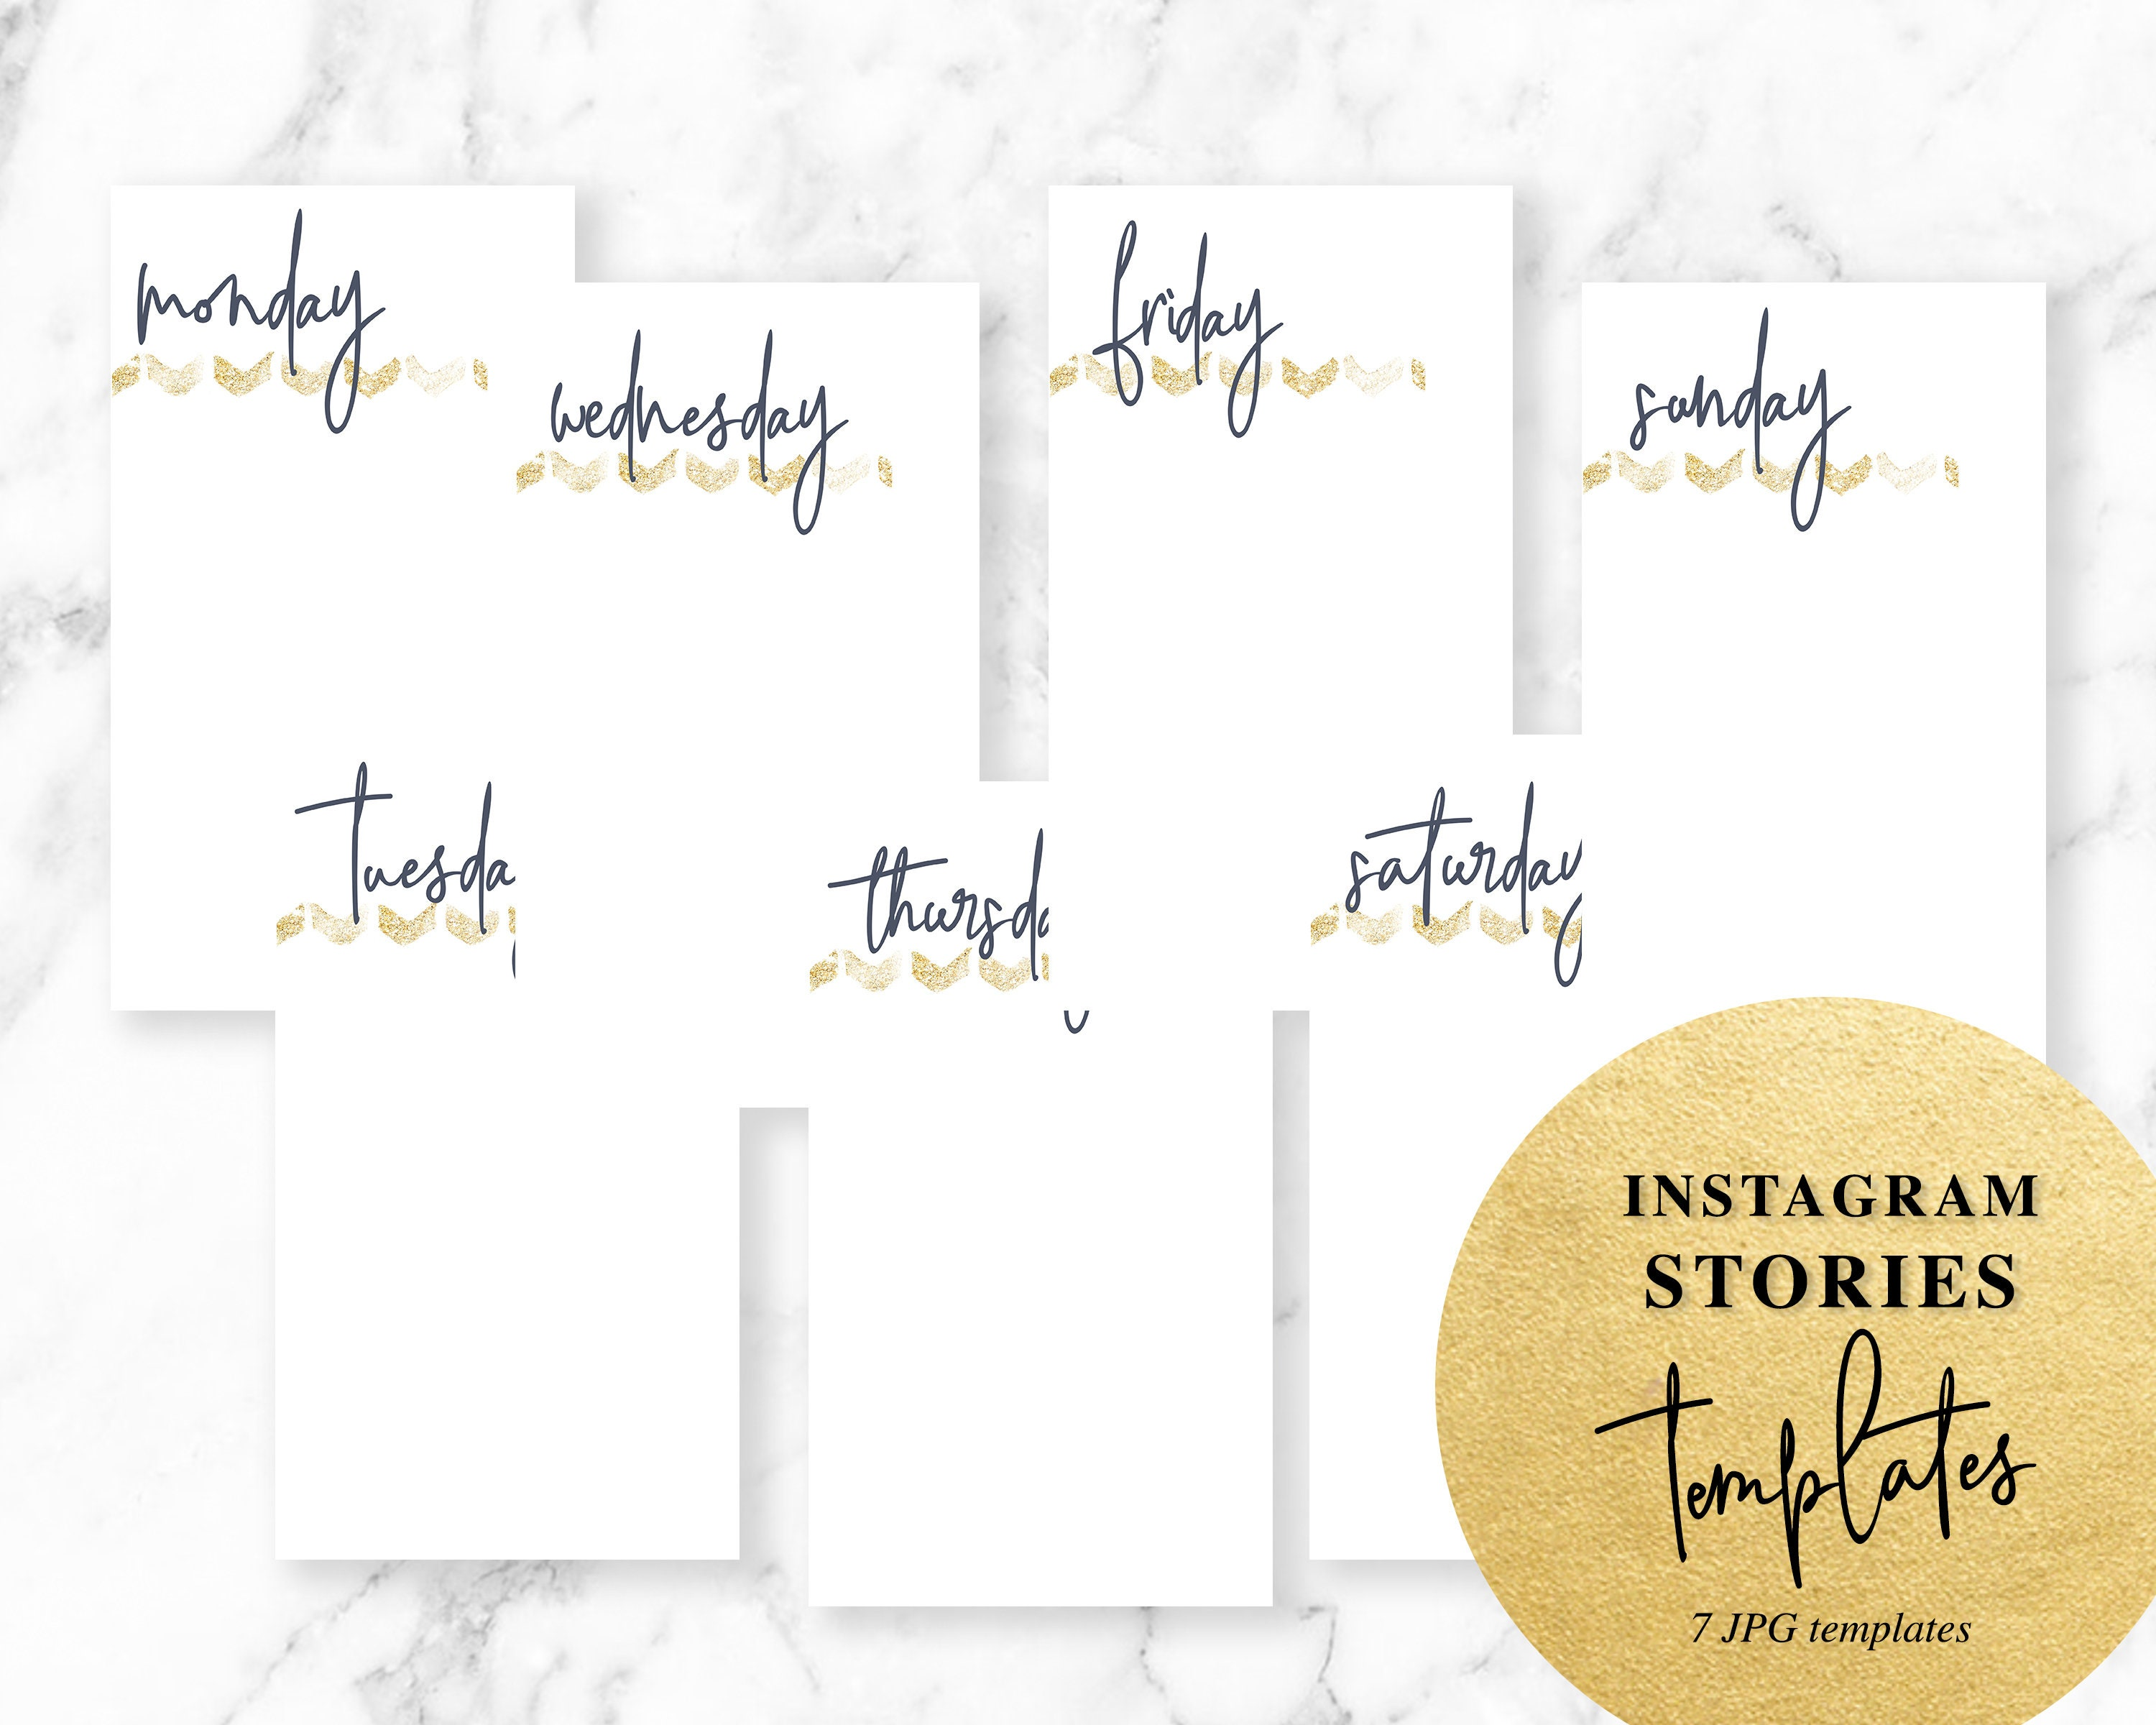 Days Of The Week Stories Template Gold Social Media Etsy